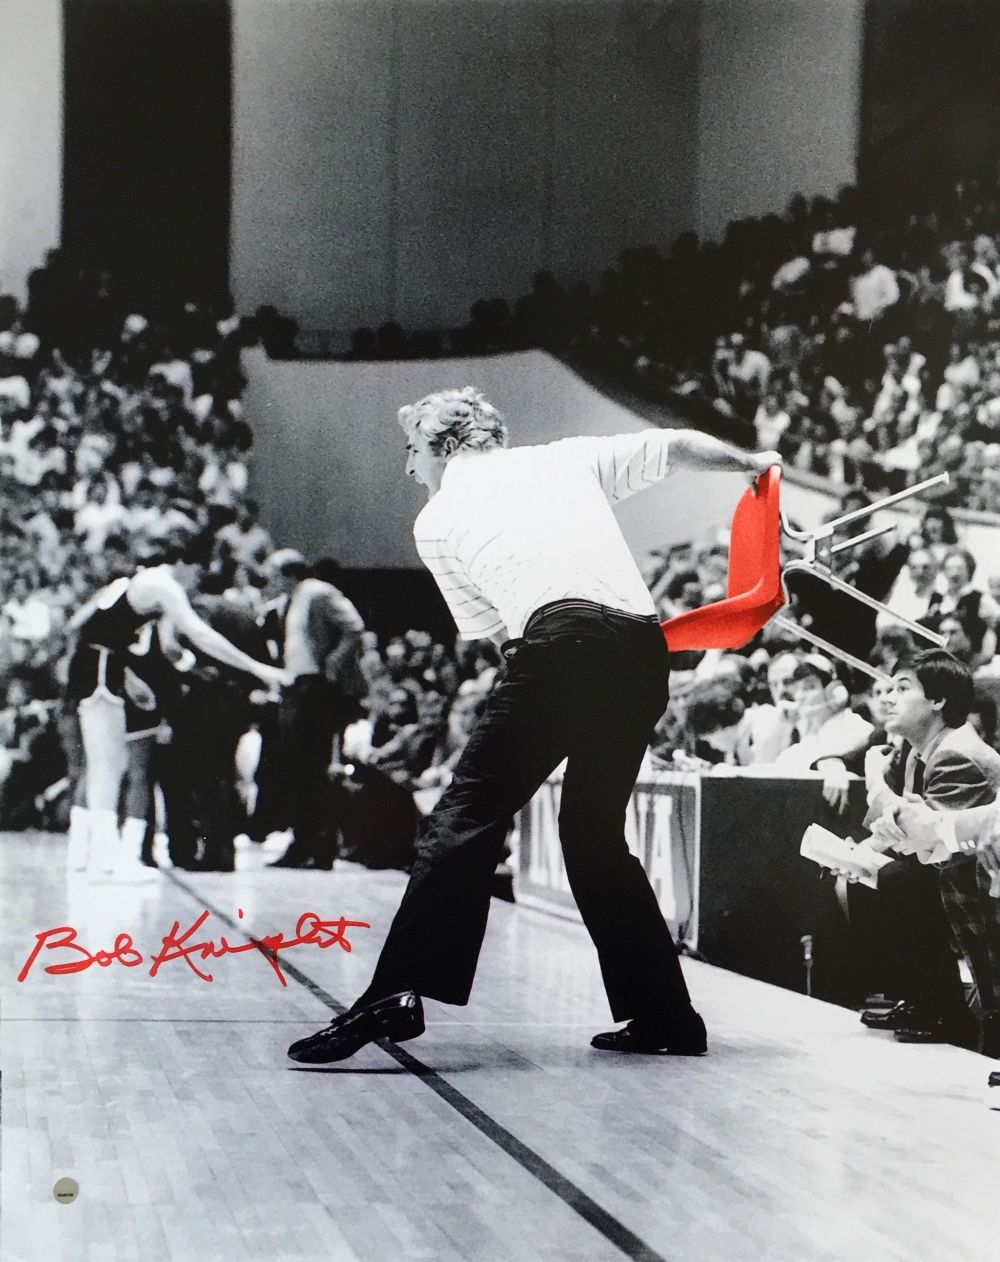 Signed bob mason picture 8x10 jsa view all bob mason - Bob Knight Indiana Hoosiers Signed 16x20 Chair Throw Photo Steiner Sports Integrity